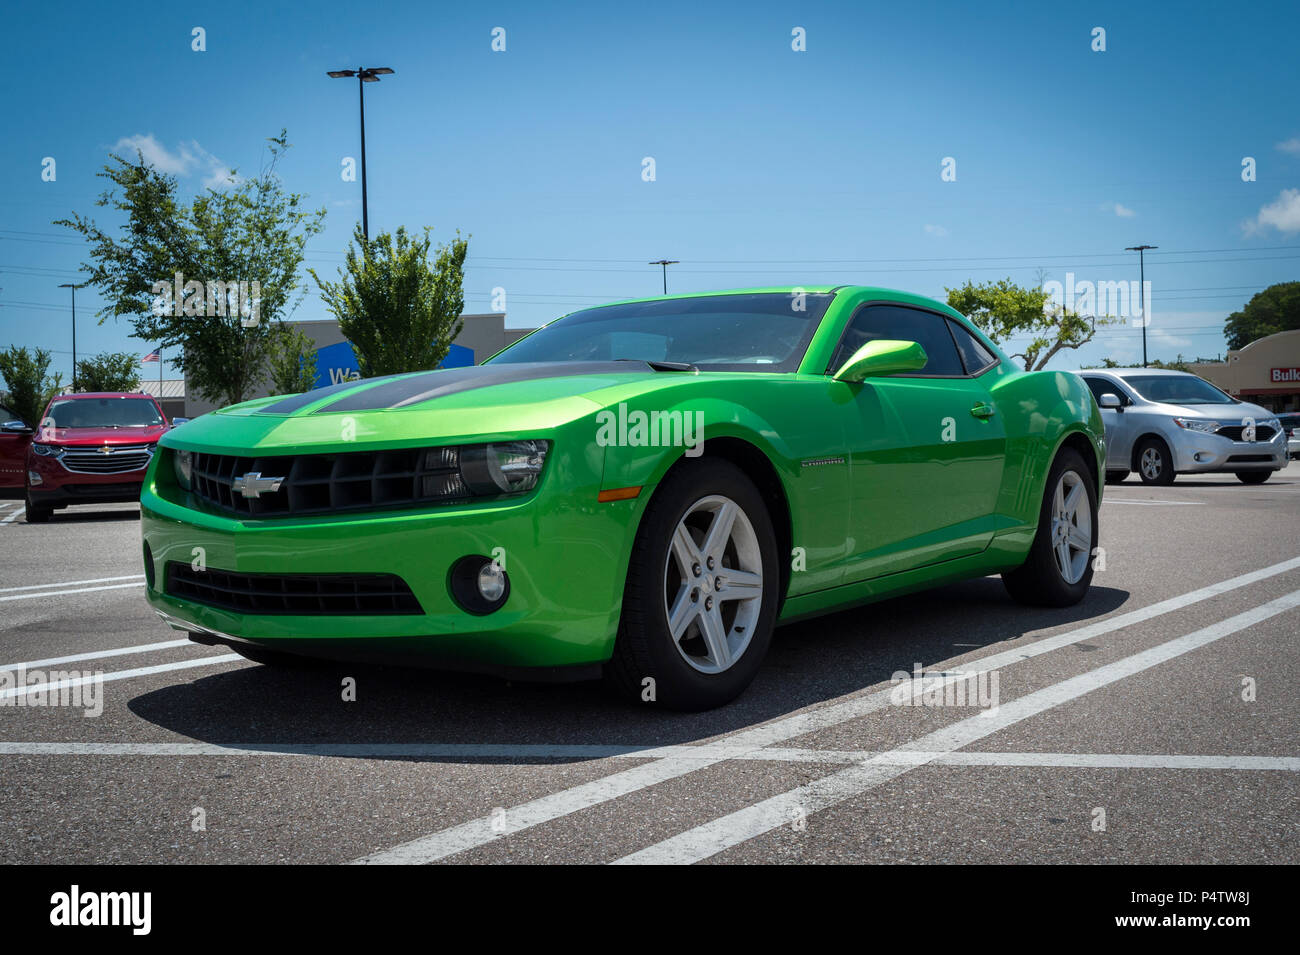 Chevrolet Camaro In Green American Muscle Car Stock Photo